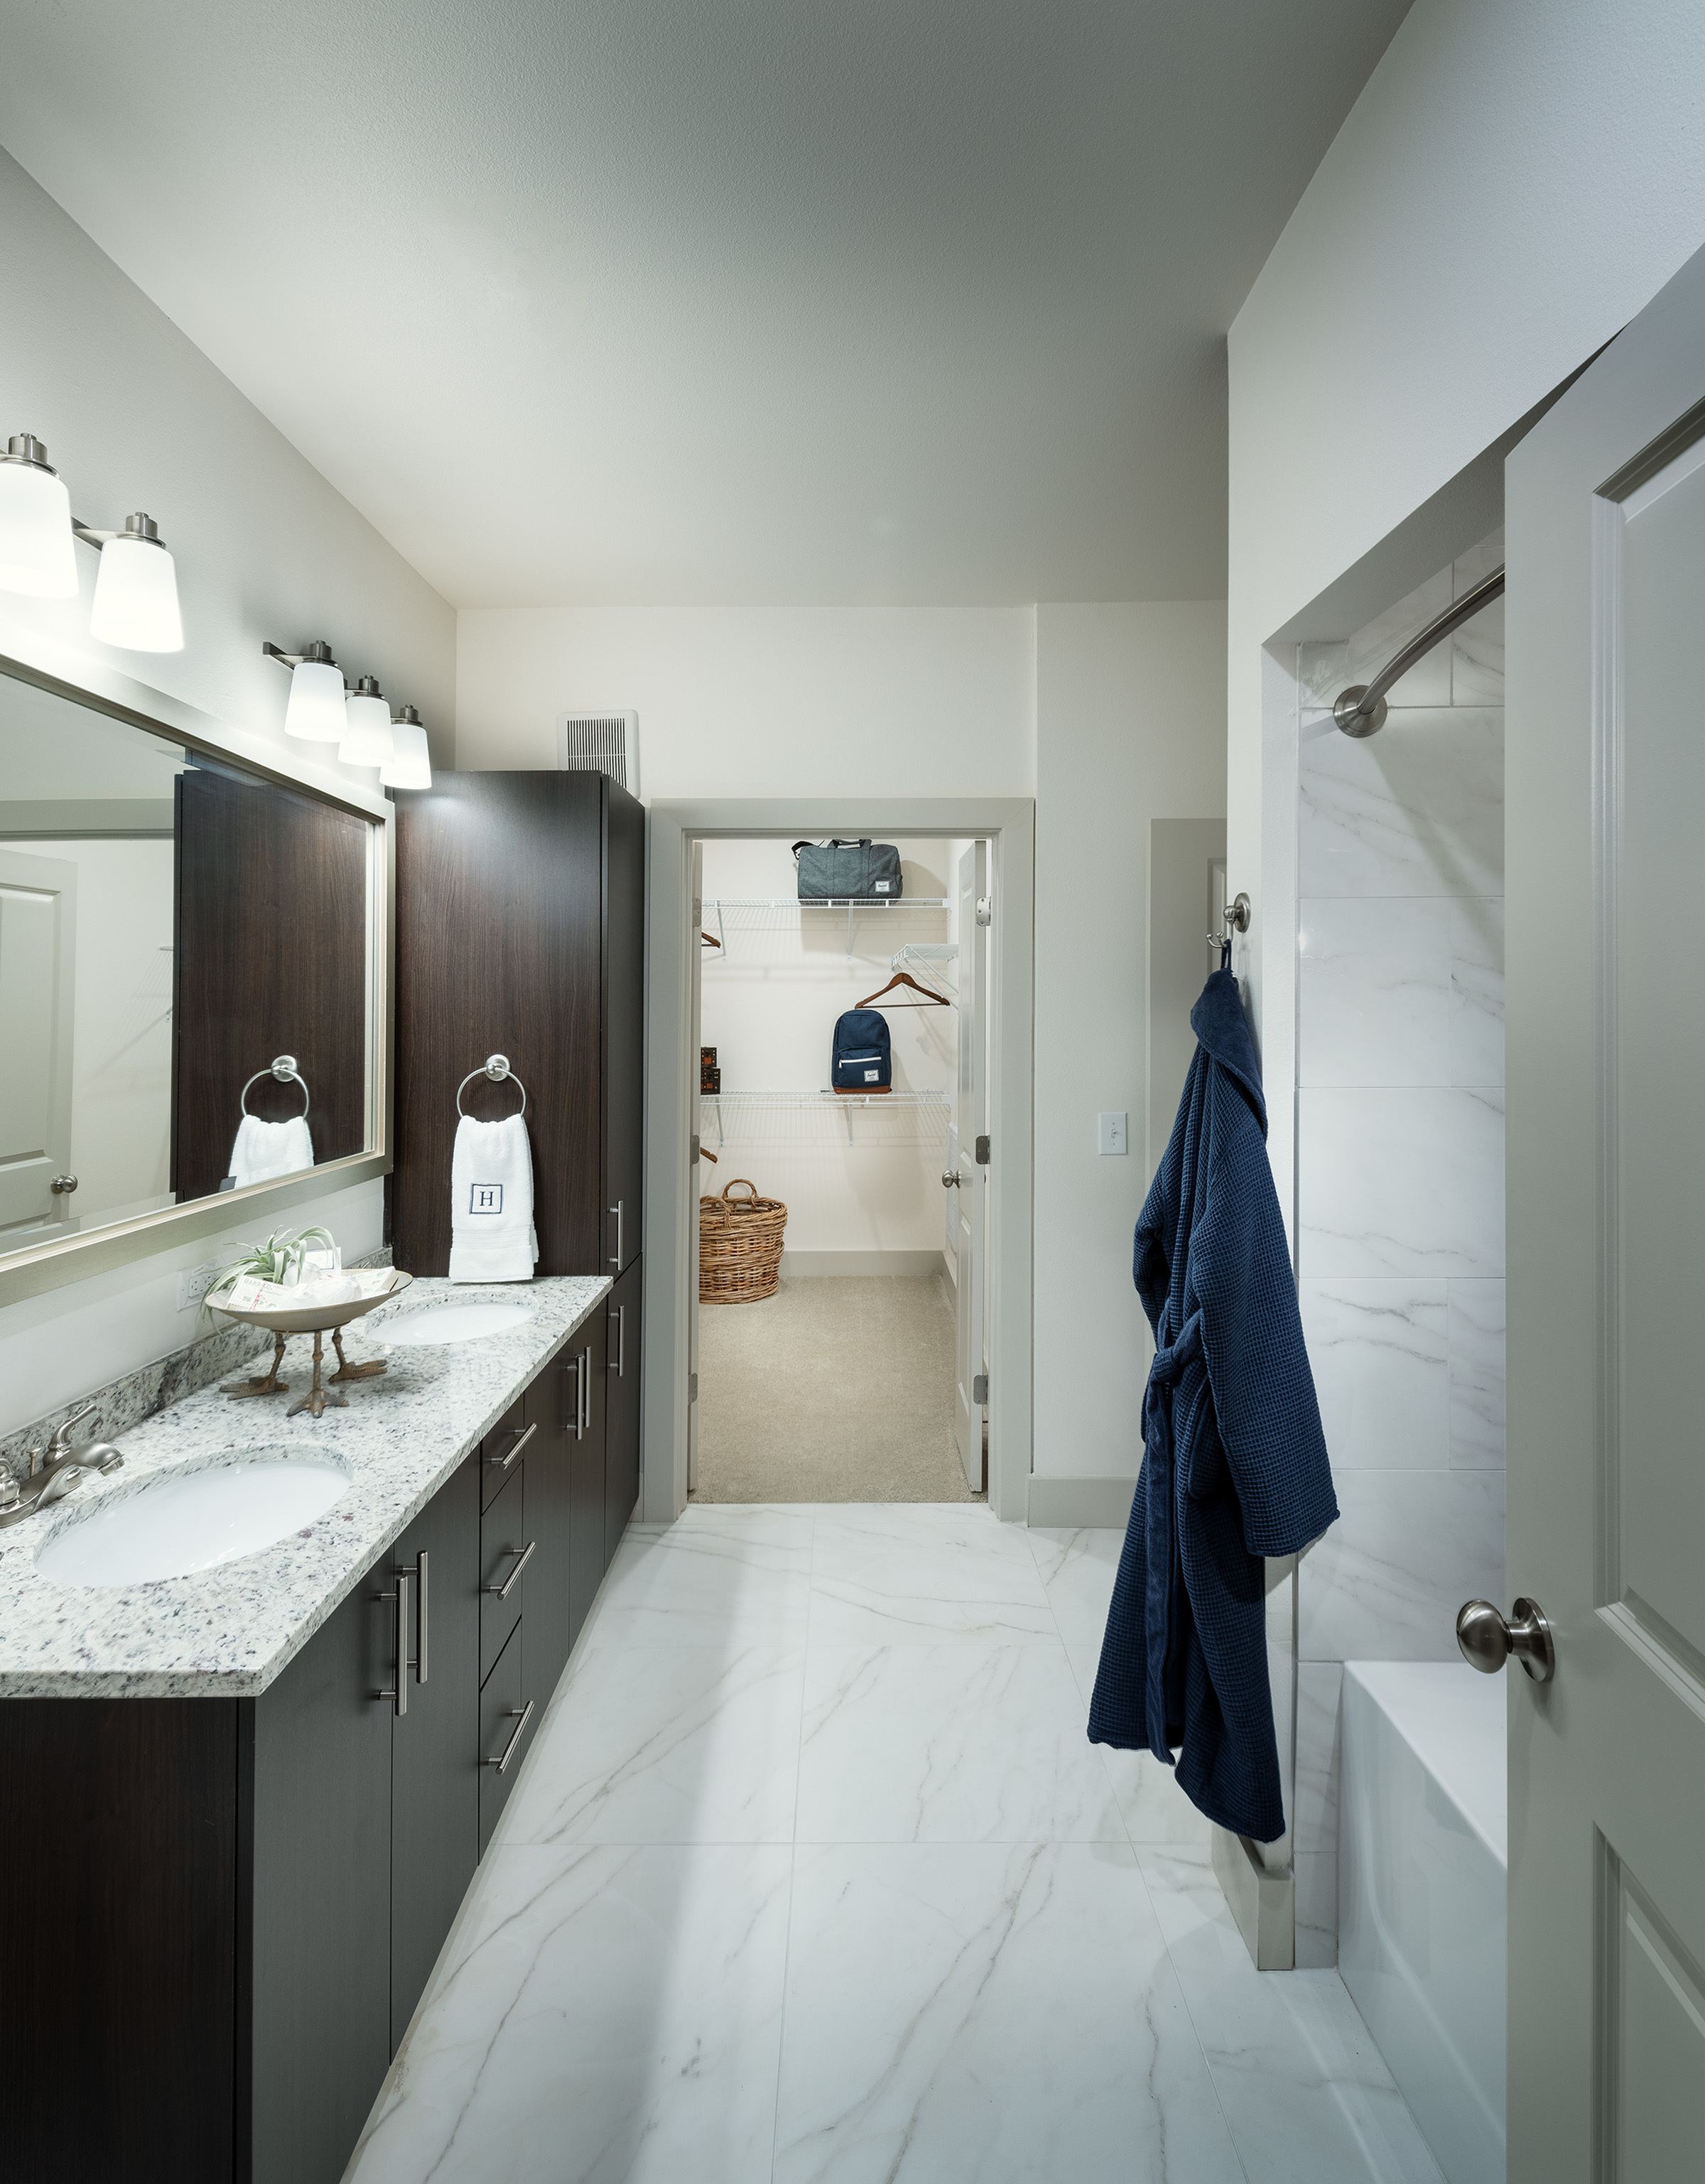 Image of Dual-vanity countertops, walk-in showers and linen closets* for Hanover Dr. Phillips